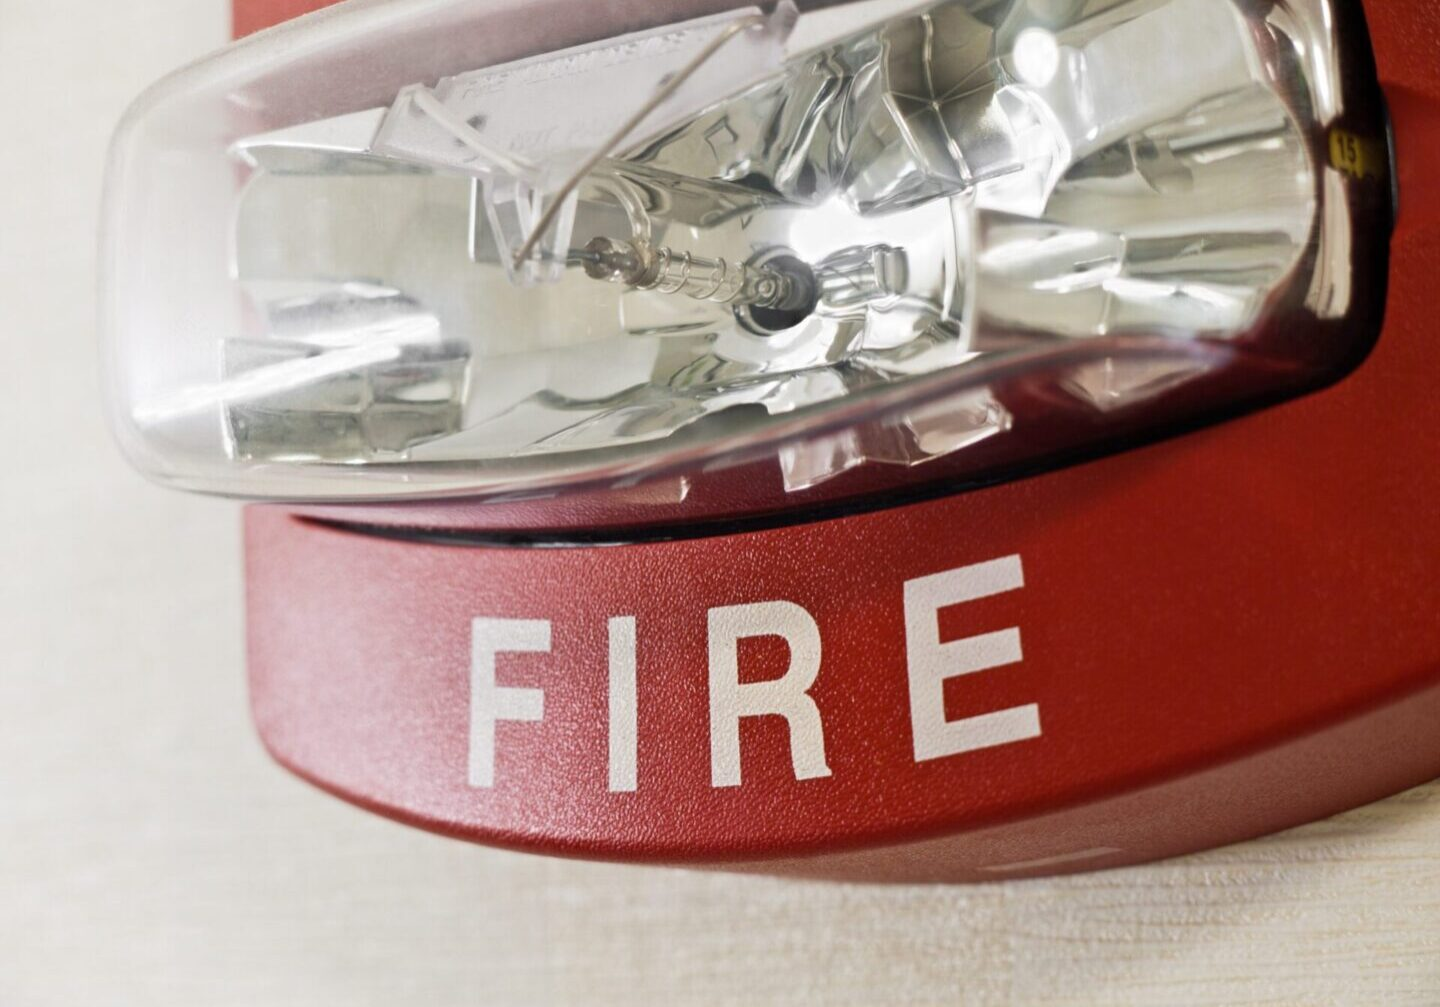 Red fire alarm with strobe light